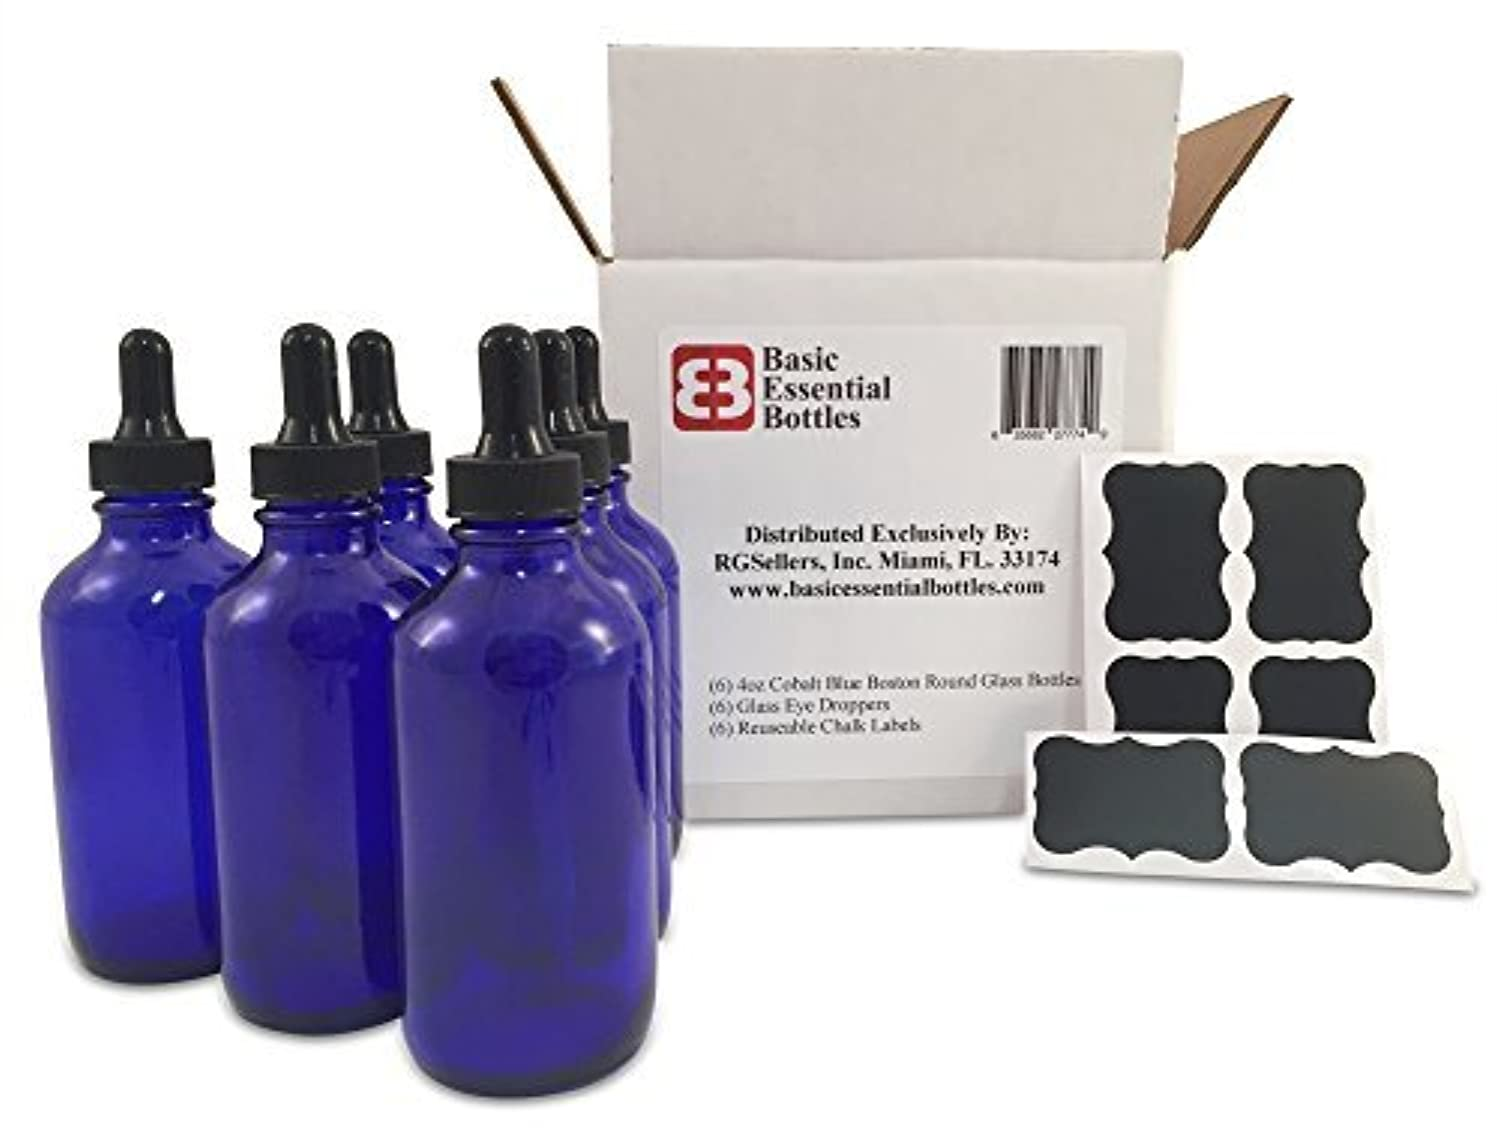 に変わる征服するドライ(6) 4 oz Empty Cobalt Blue Glass Bottles W/Glass Eye Droppers and (6) Chalk Labels for Essential Oils, Aromatherapy...